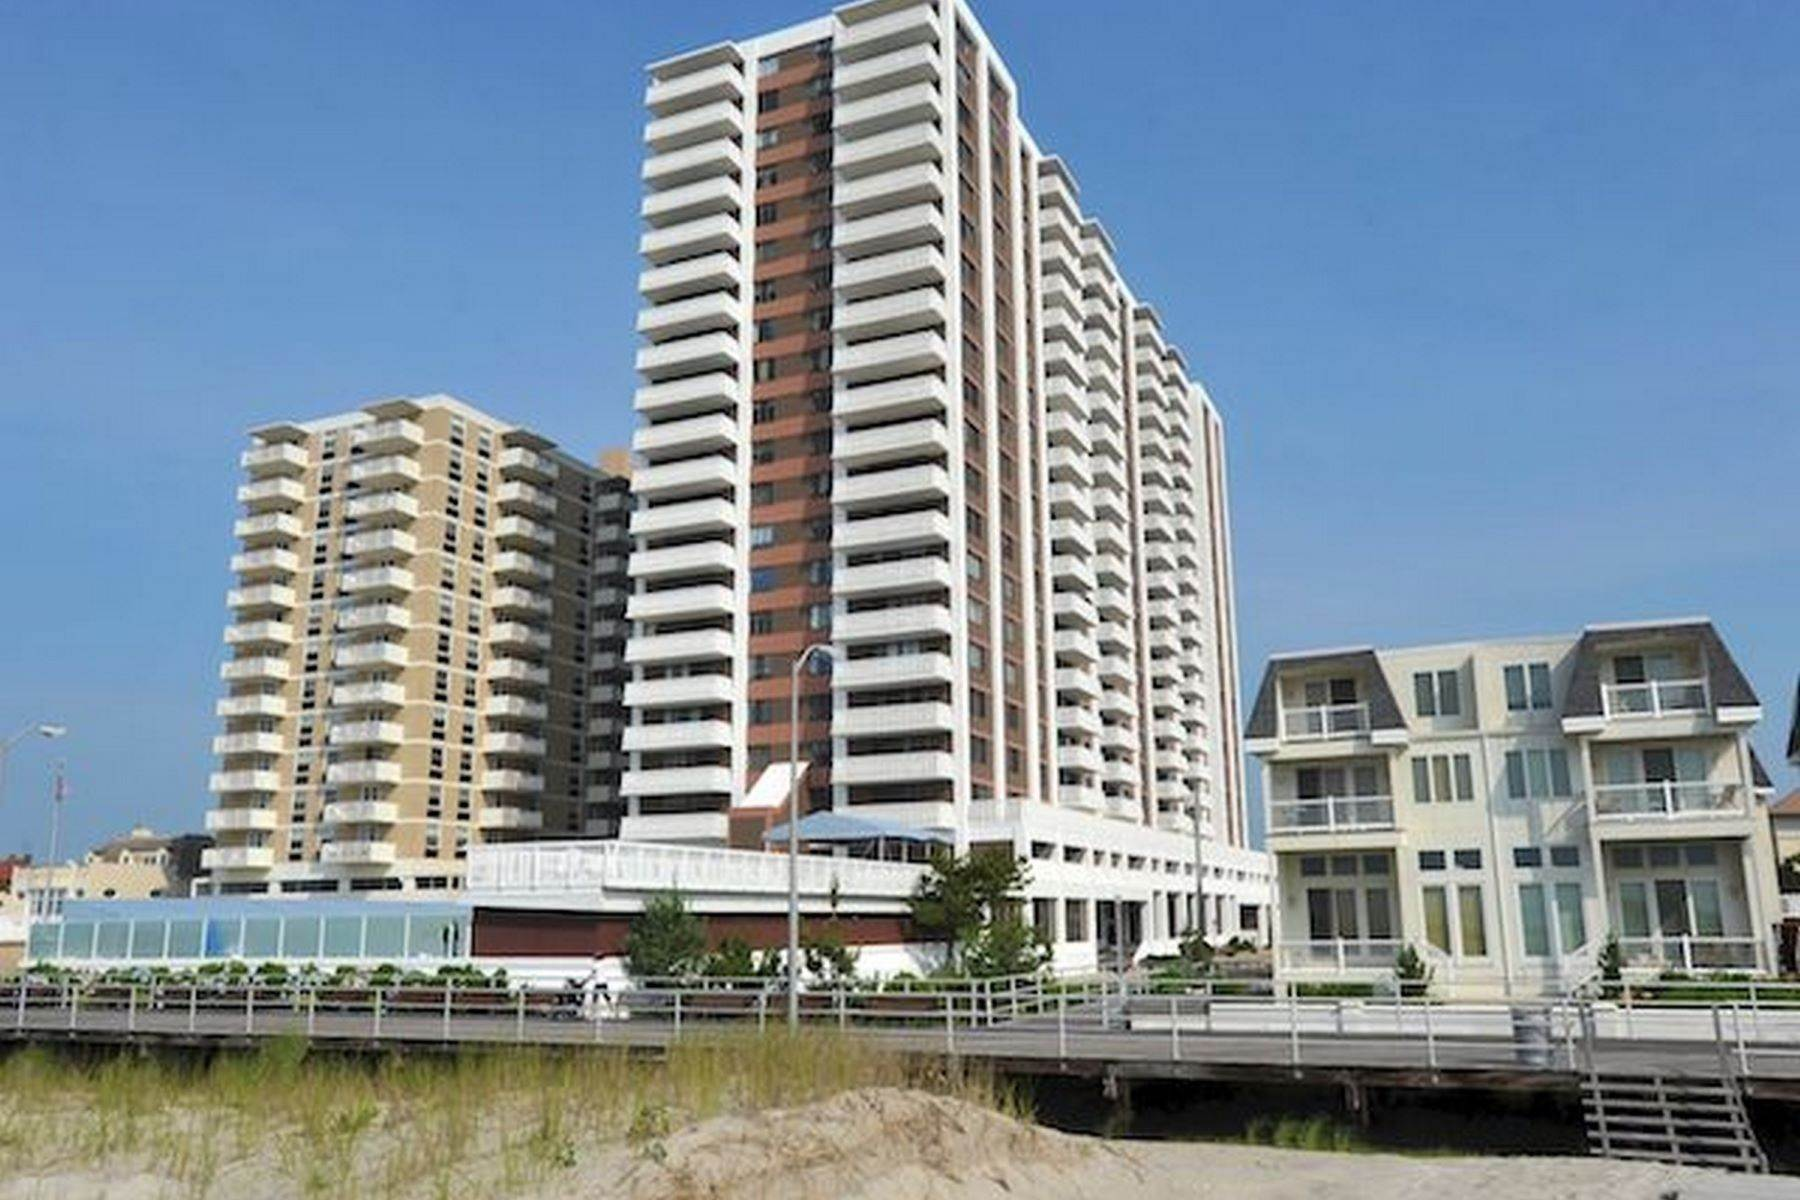 1. Condominiums for Sale at 100 S Berkely #21A 100 S Berkley Ave #21A Atlantic City, New Jersey 08401 United States